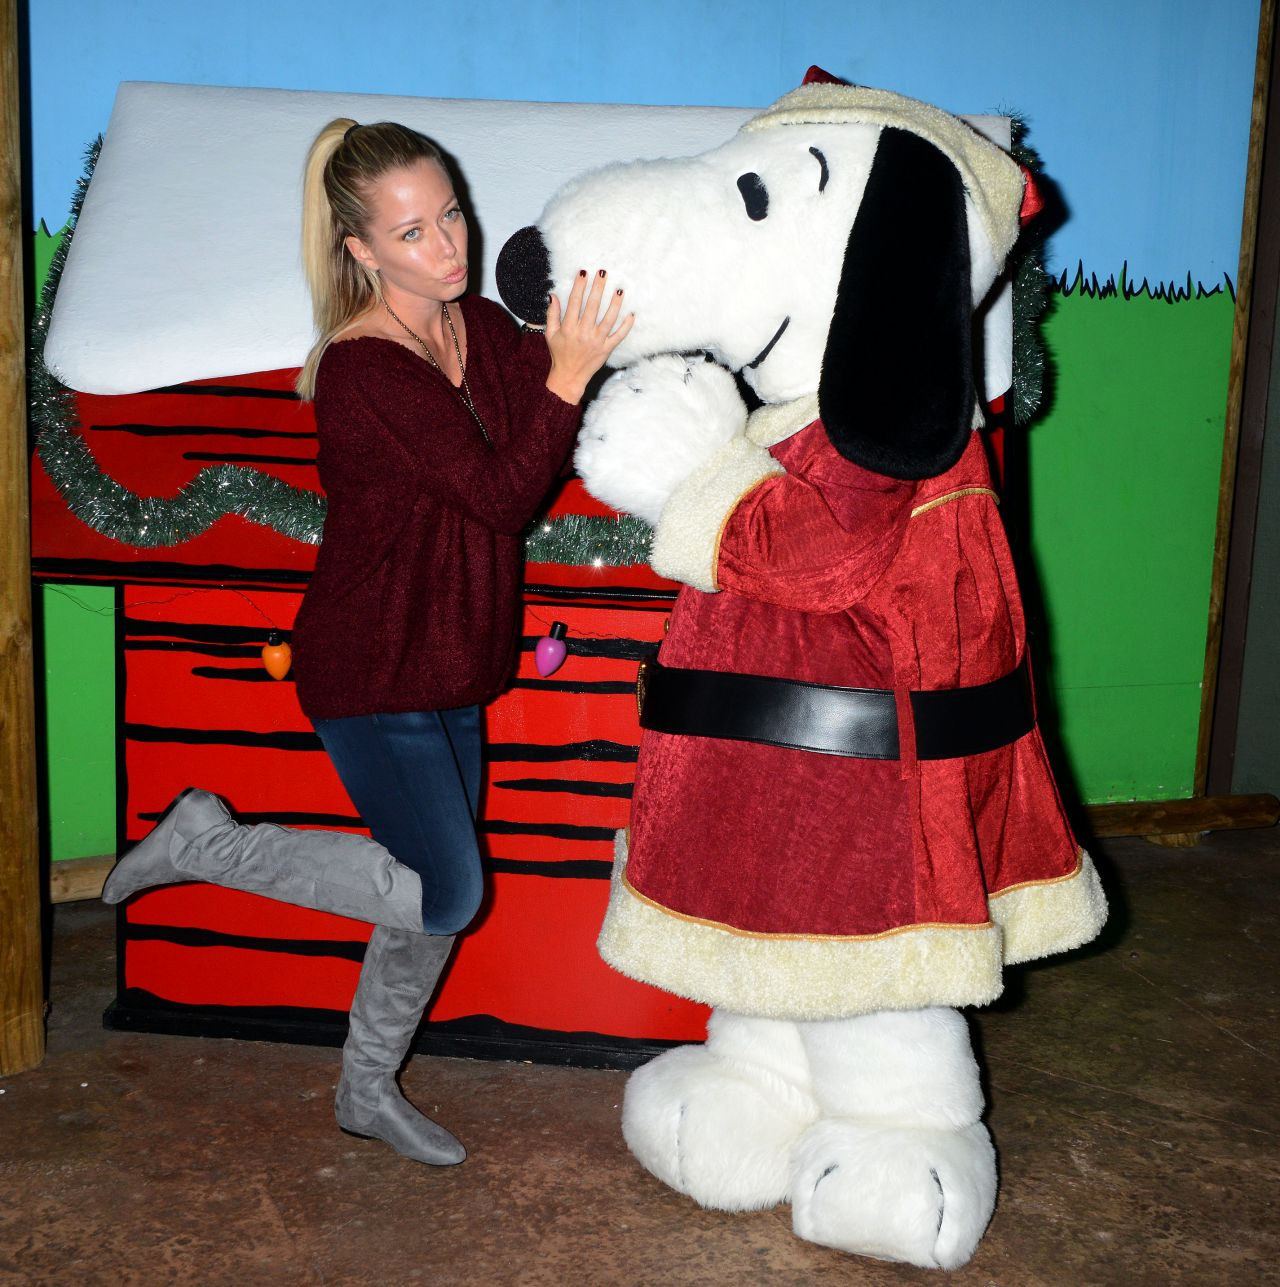 Kendra wilkinson knotts merry farm countdown to christmas kendra wilkinson knotts merry farm countdown to christmas tree lighting december 2015 aloadofball Image collections